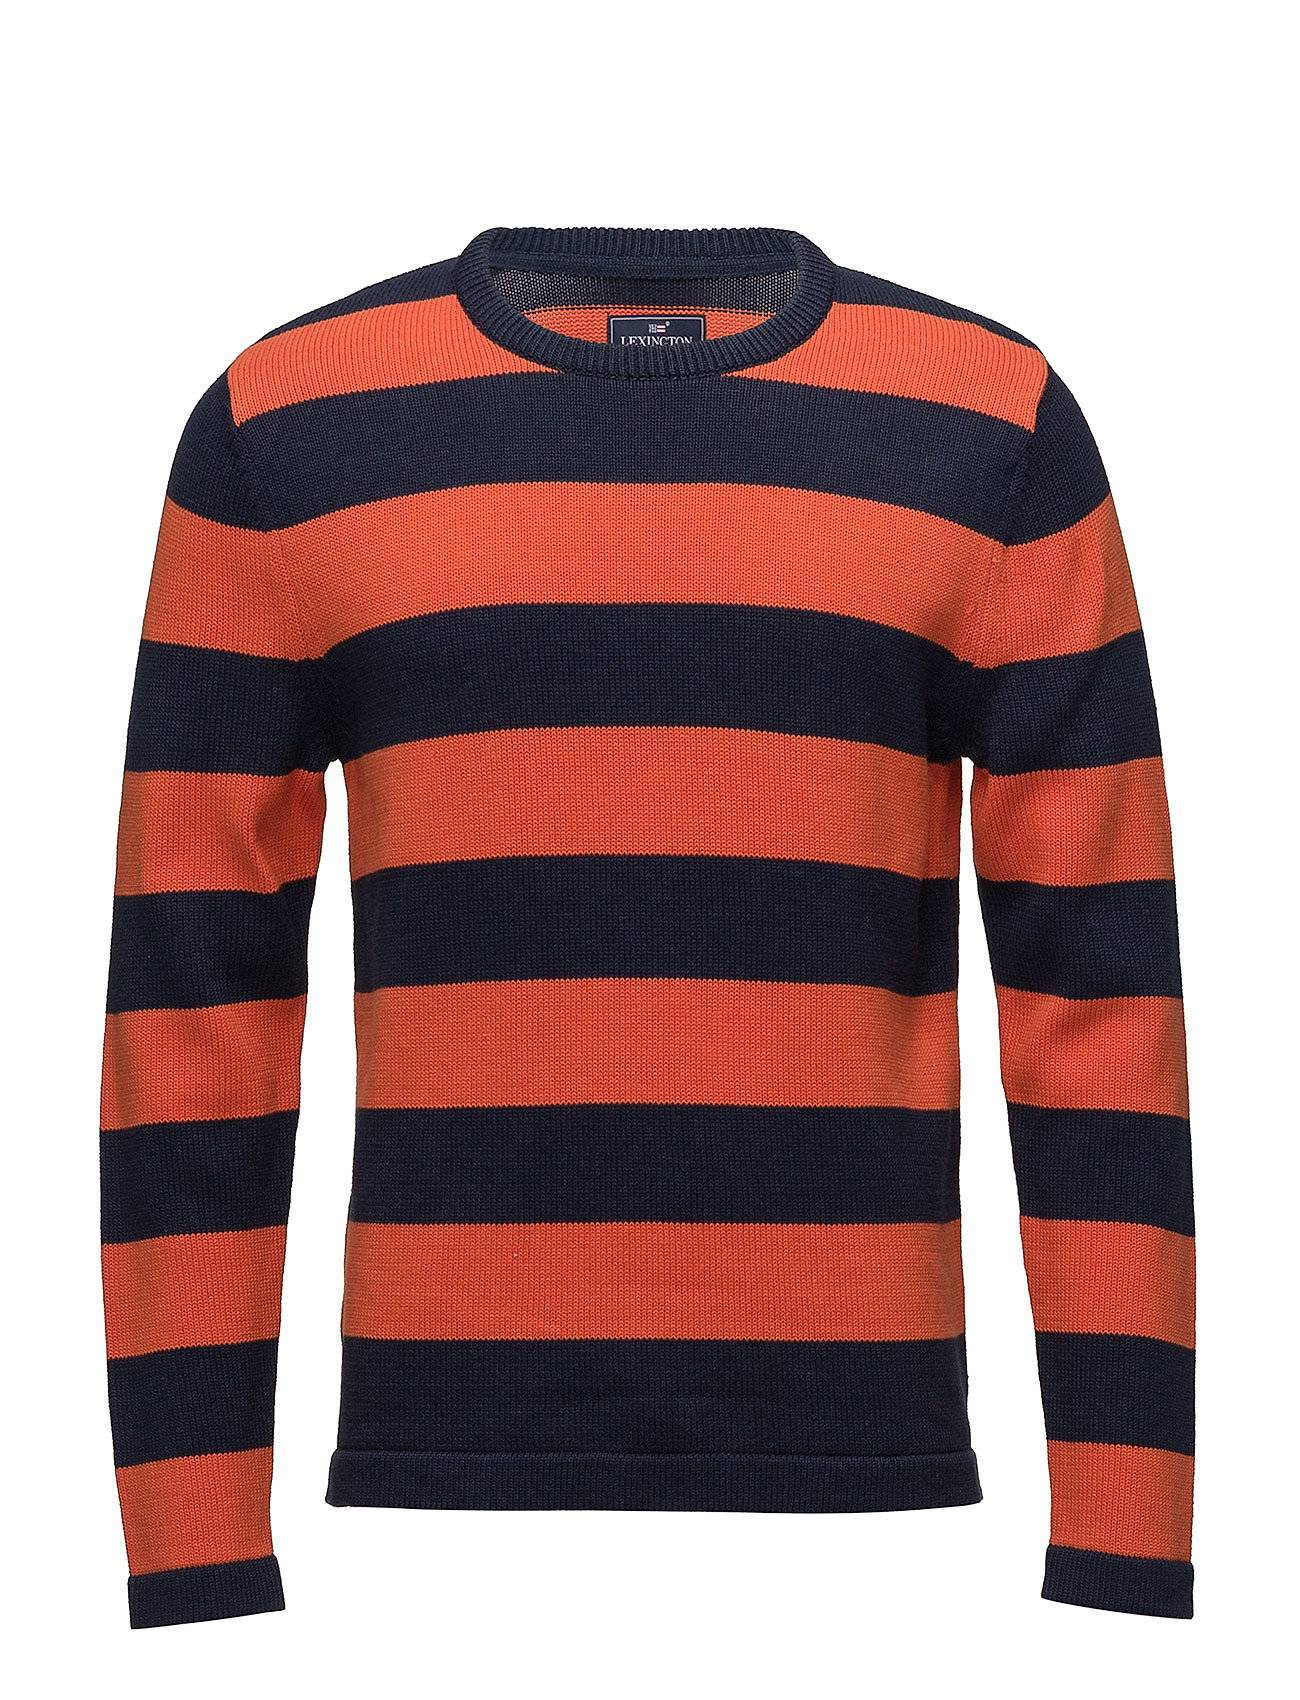 Lexington Clothing Lincoln Striped Sweater